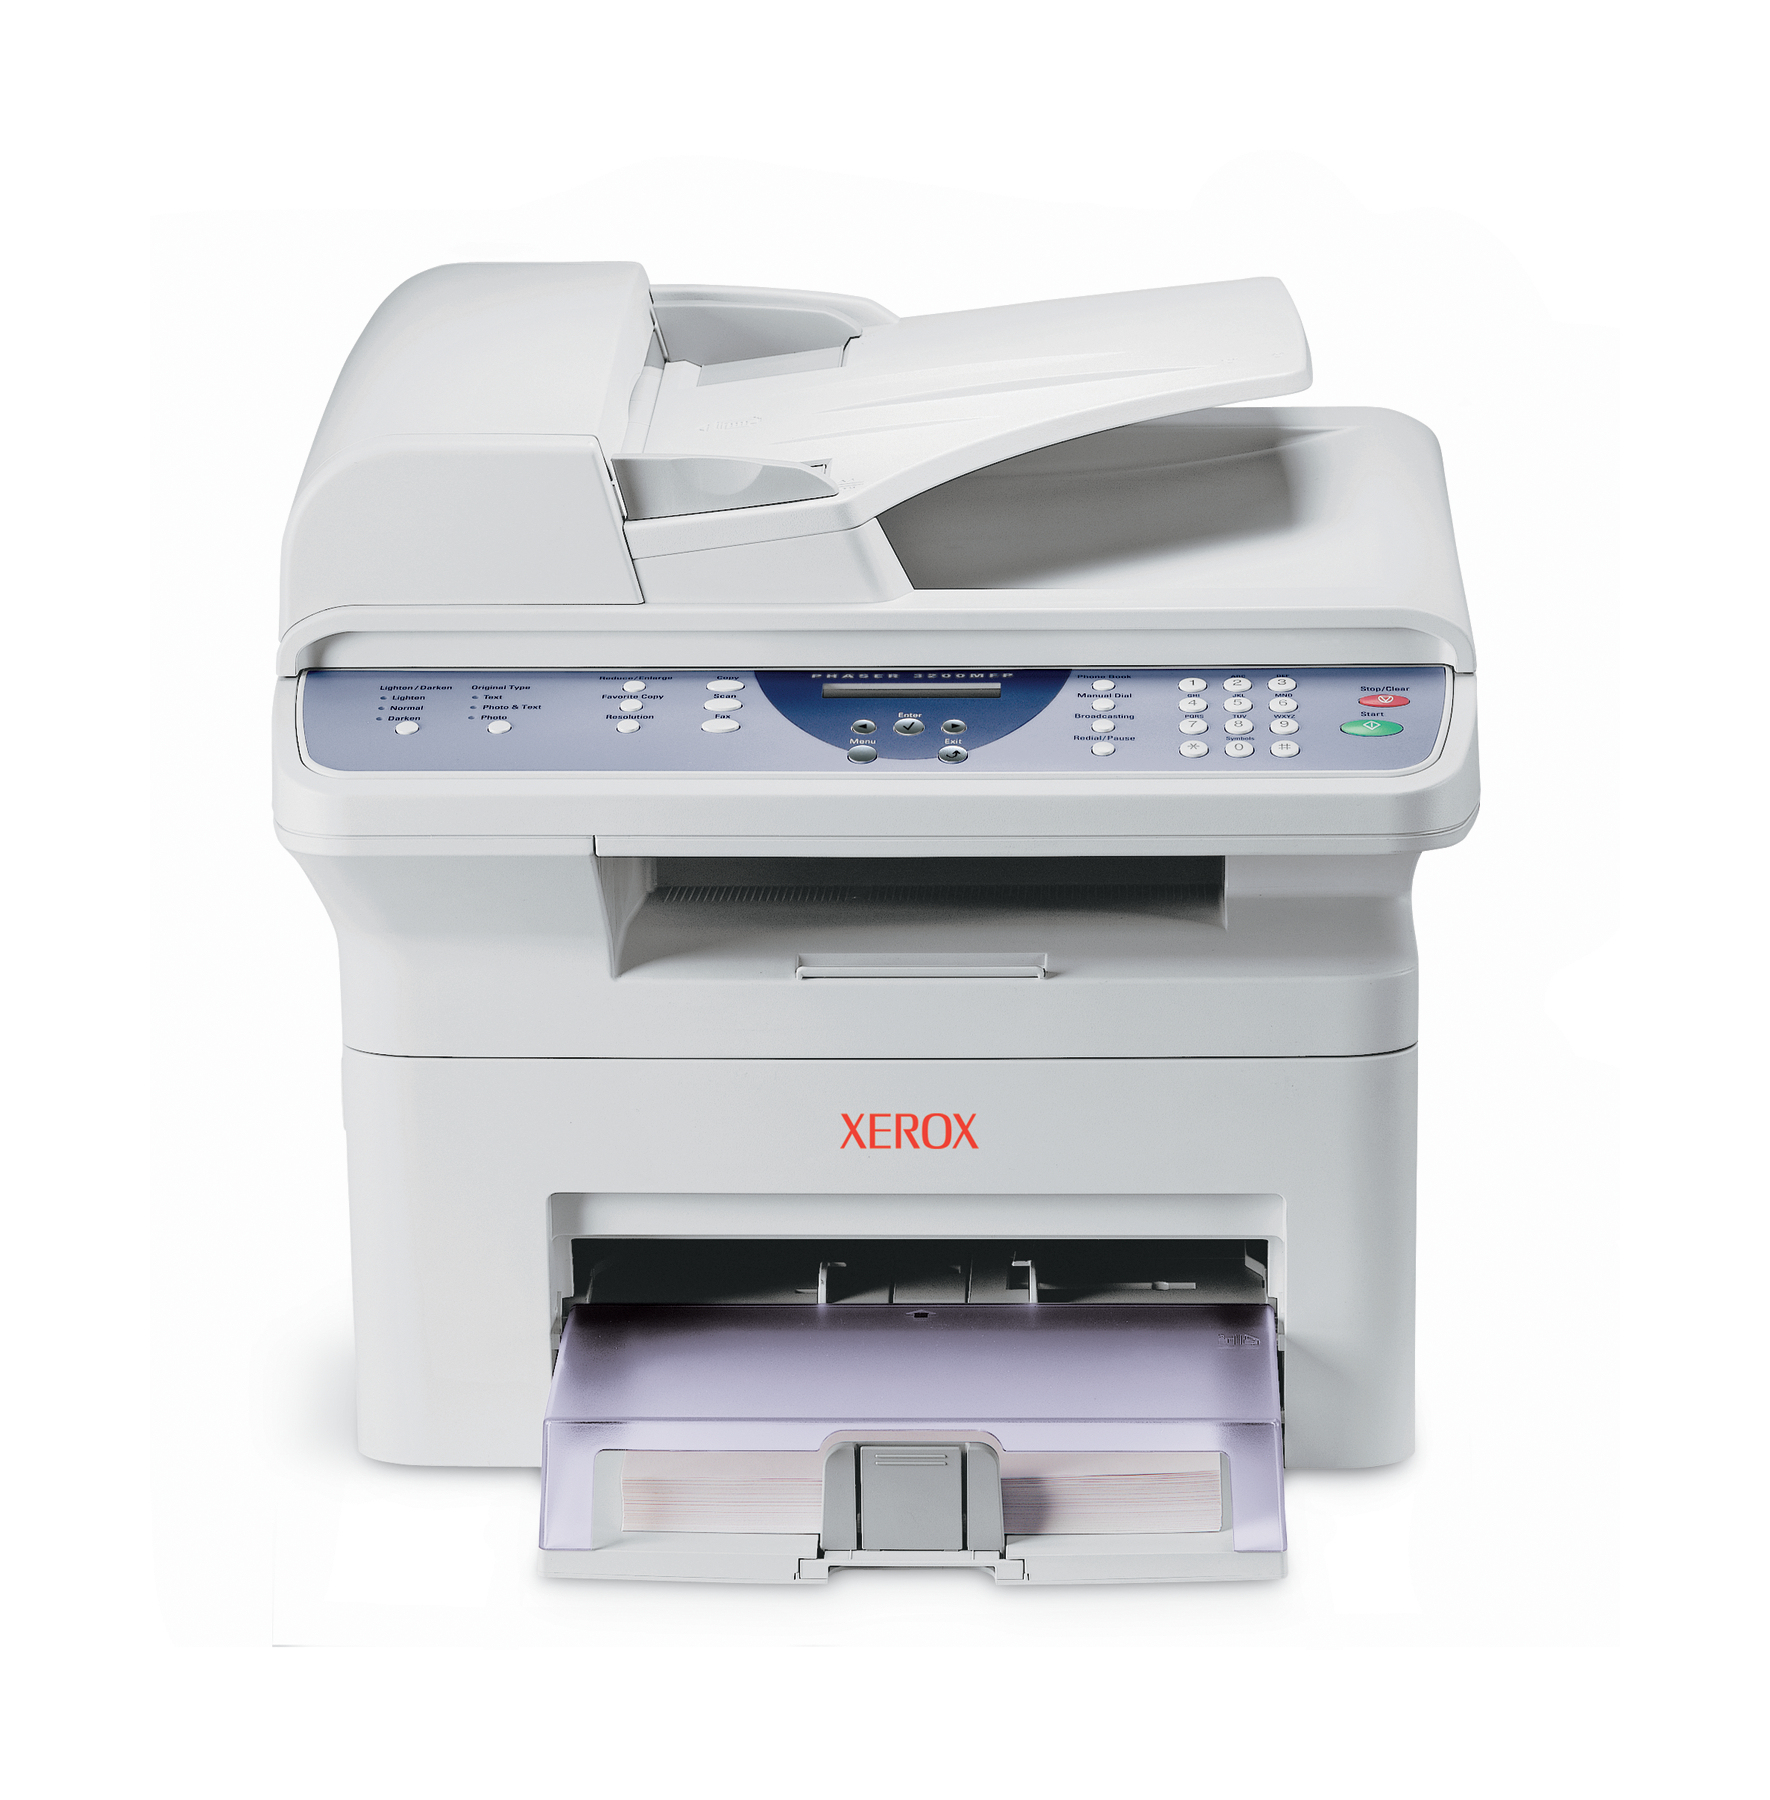 Xerox Phaser 3200mfp Printer 3200MFPV_B - Refurbished